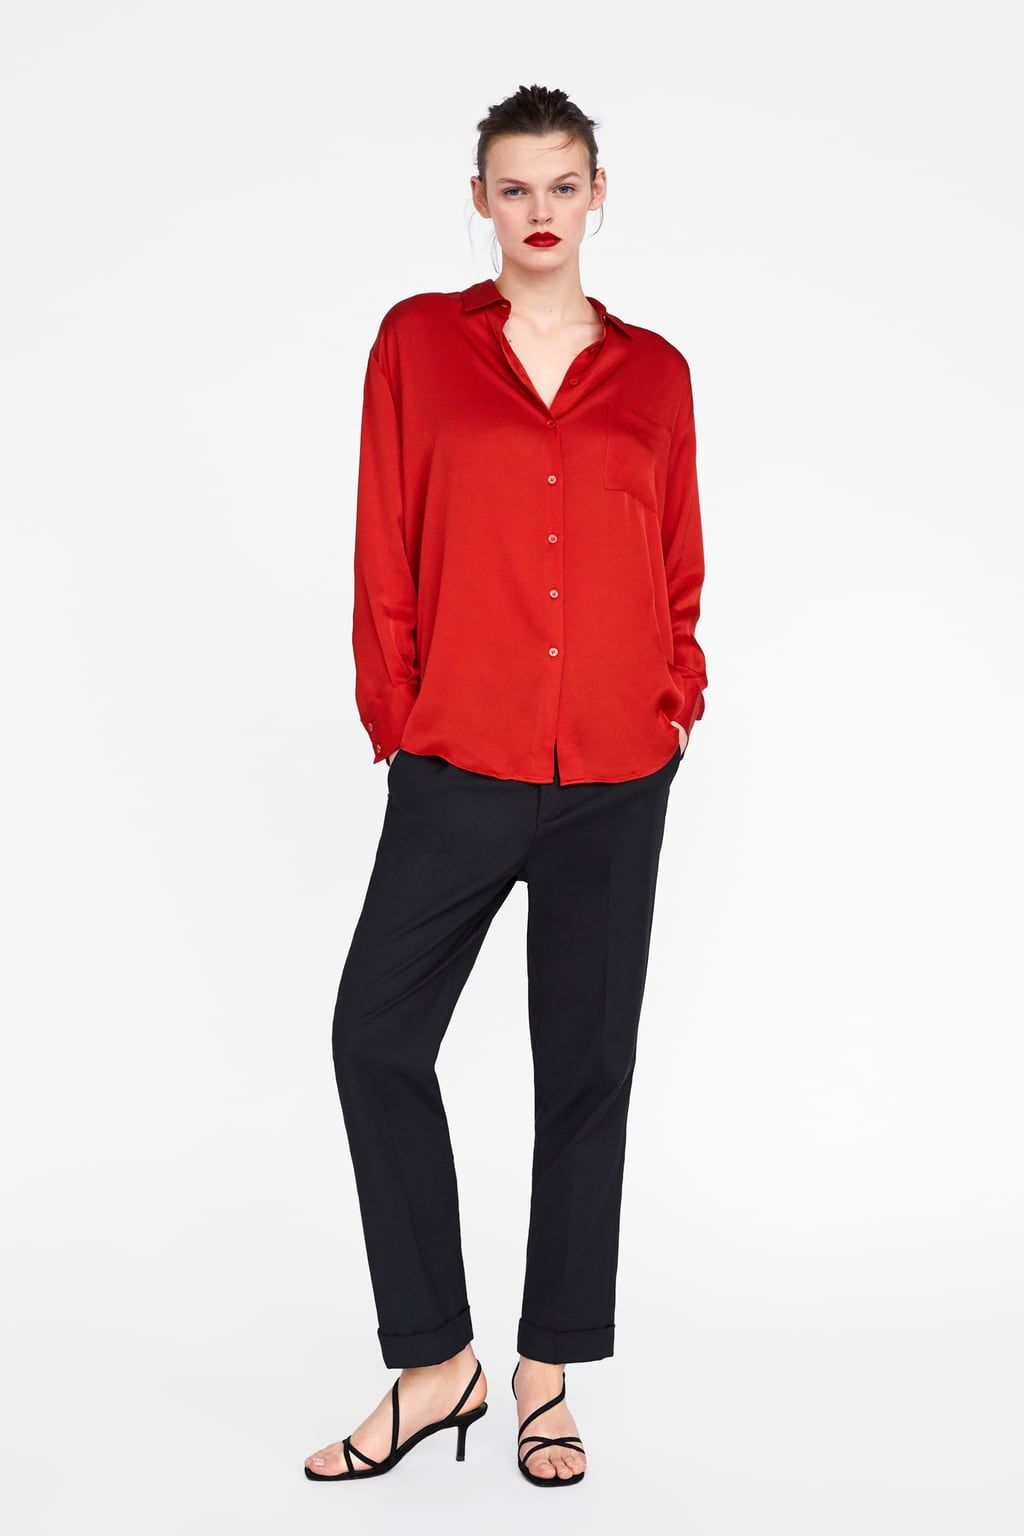 f7160cda870a8a Image 1 of SATIN-FINISH BLOUSE WITH POCKET from Zara ...